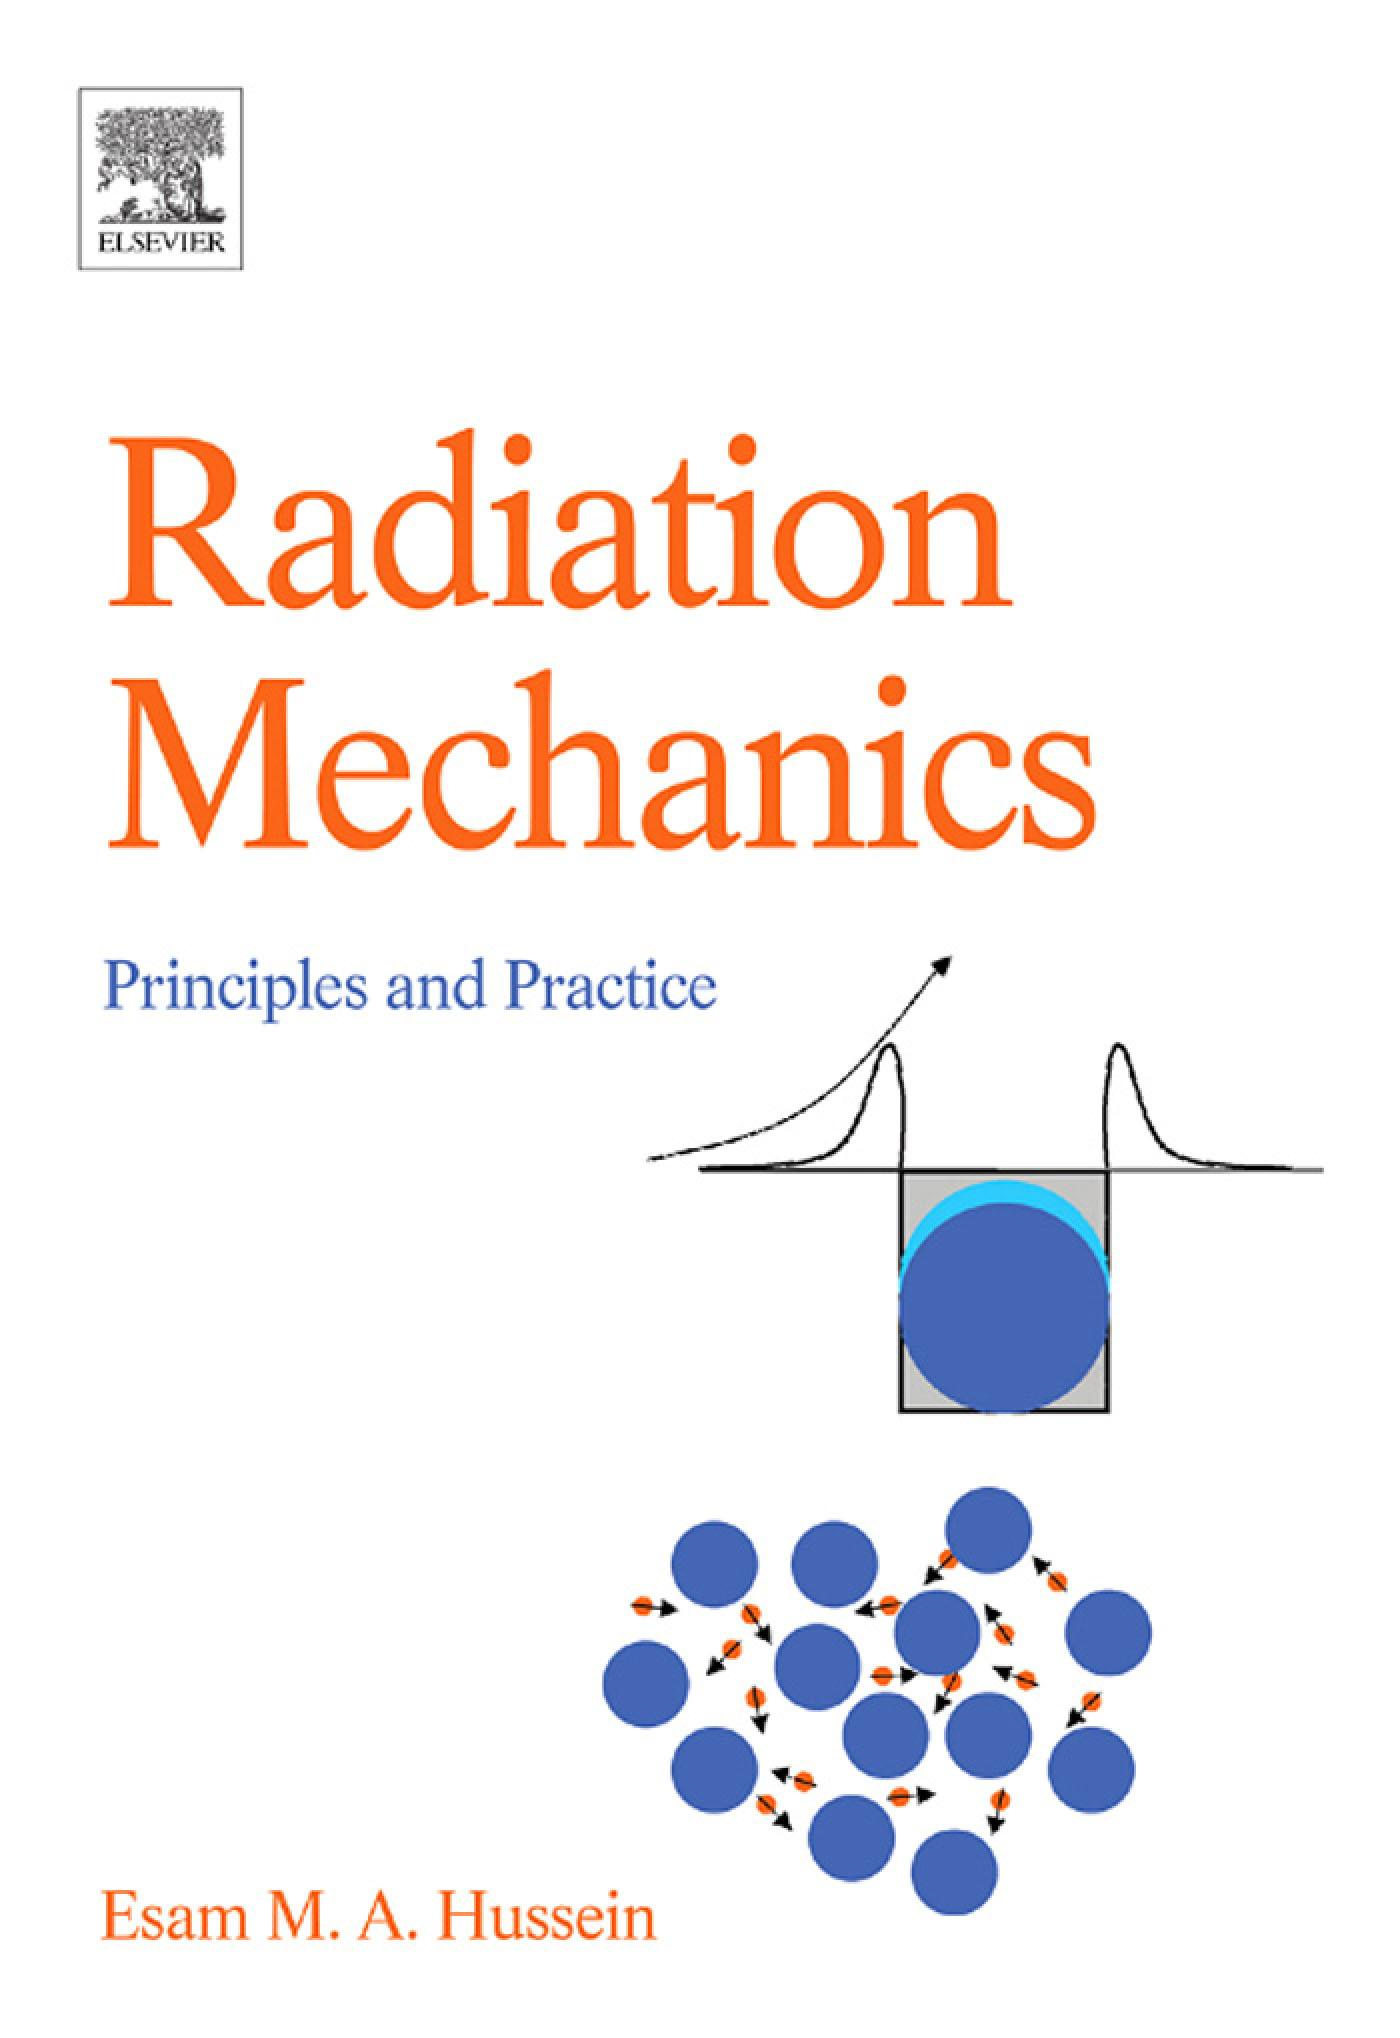 Radiation Mechanics: Principles & Practice